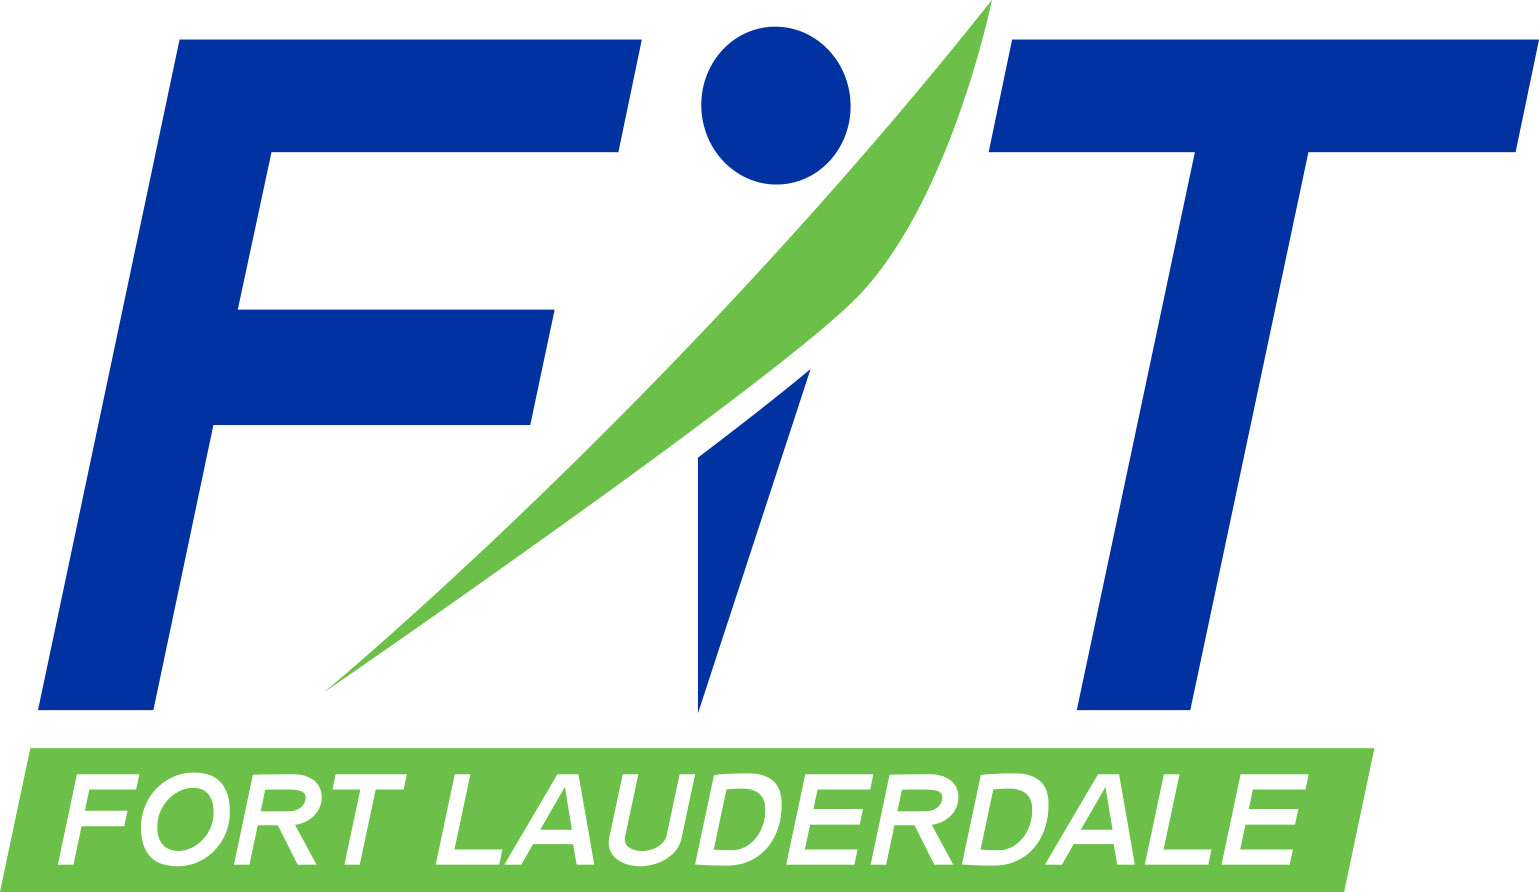 Fit Fort Lauderdale 5K - 1/11/20